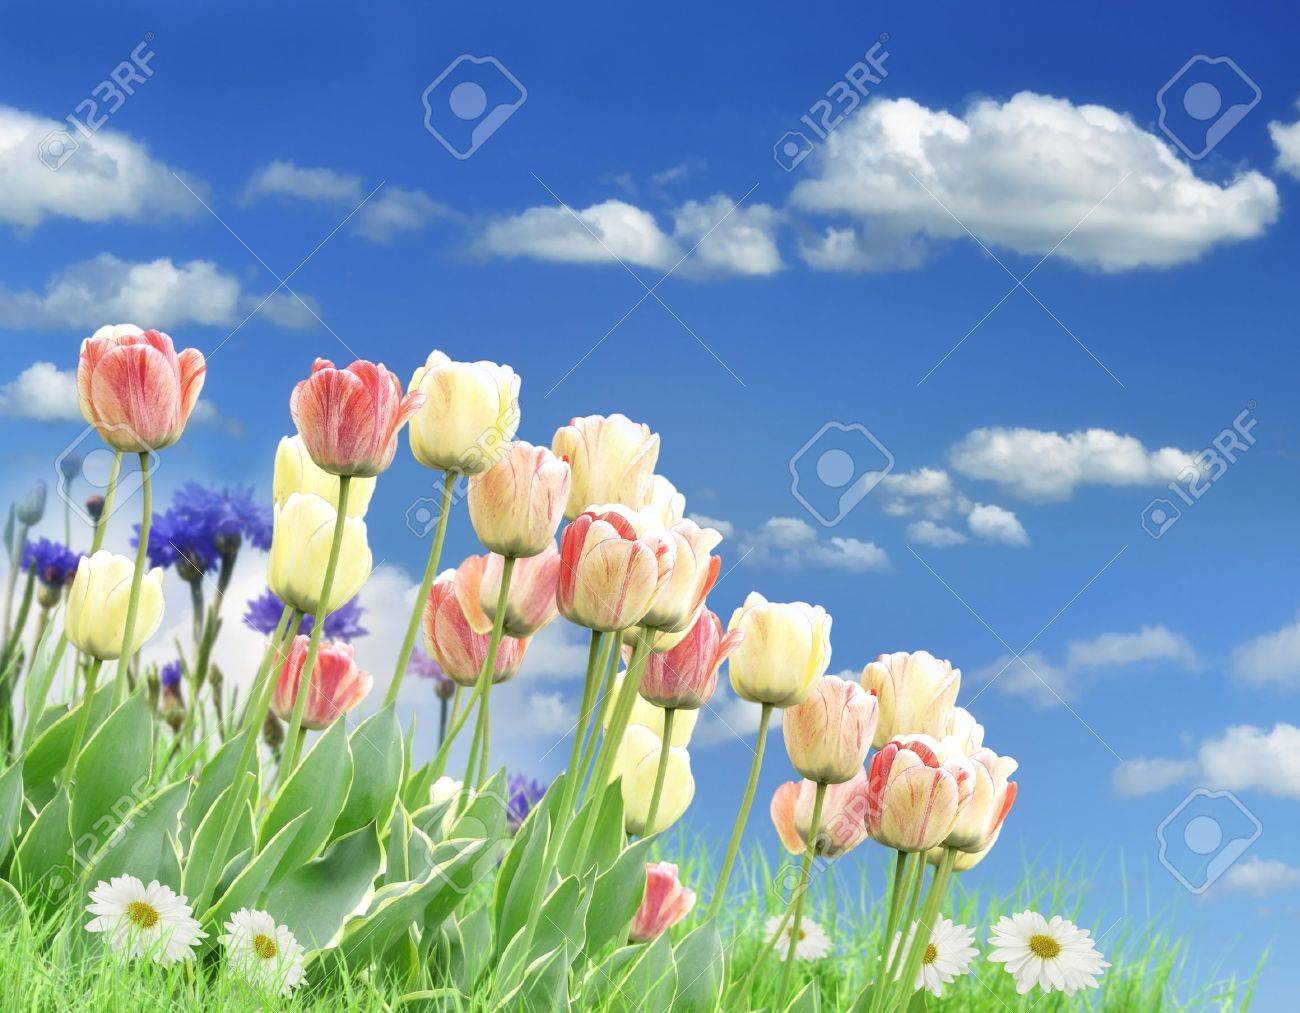 Colorful spring flowers and grass against a blue sky stock photo colorful spring flowers and grass against a blue sky stock photo 12196979 dhlflorist Choice Image